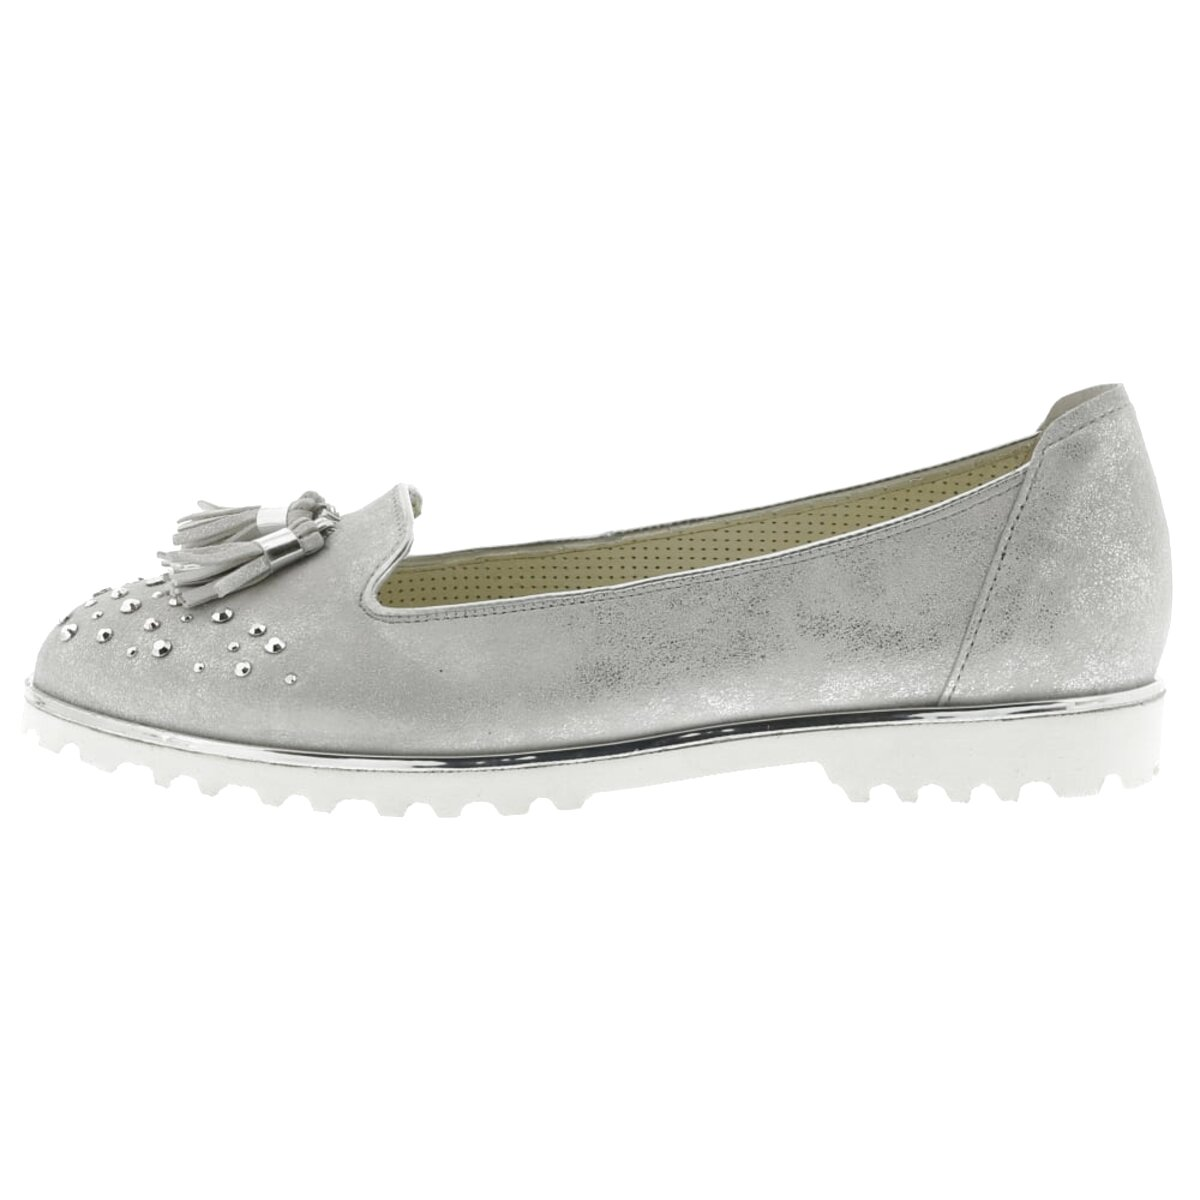 gabor silver shoes for sale